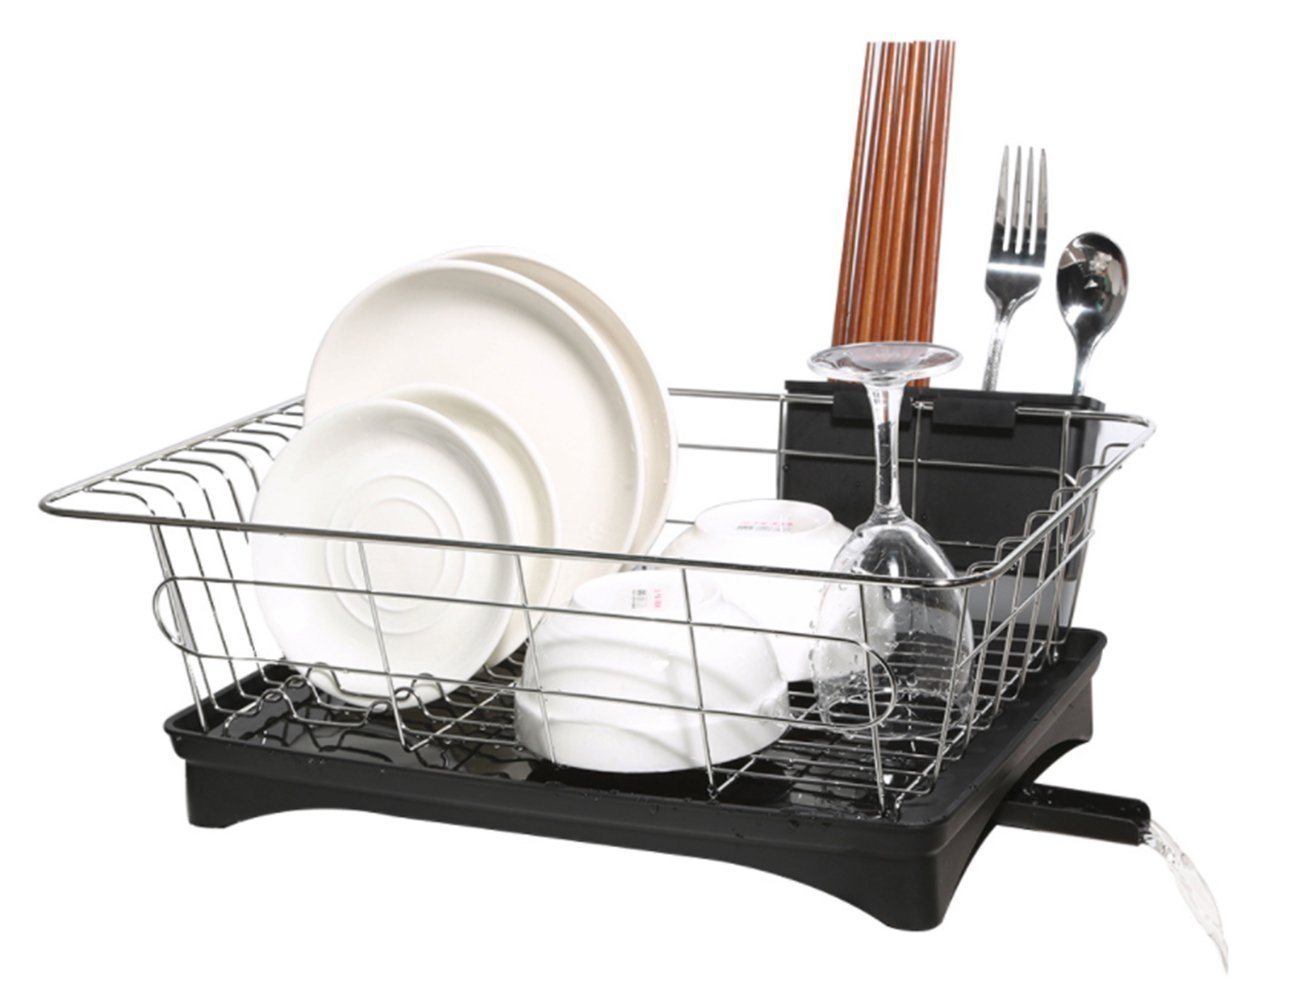 16.5 x 11 x 6 IN Dish Drying Rack with Drain Board Small Size DrainBoard Set for Kitchen Dish Drainer